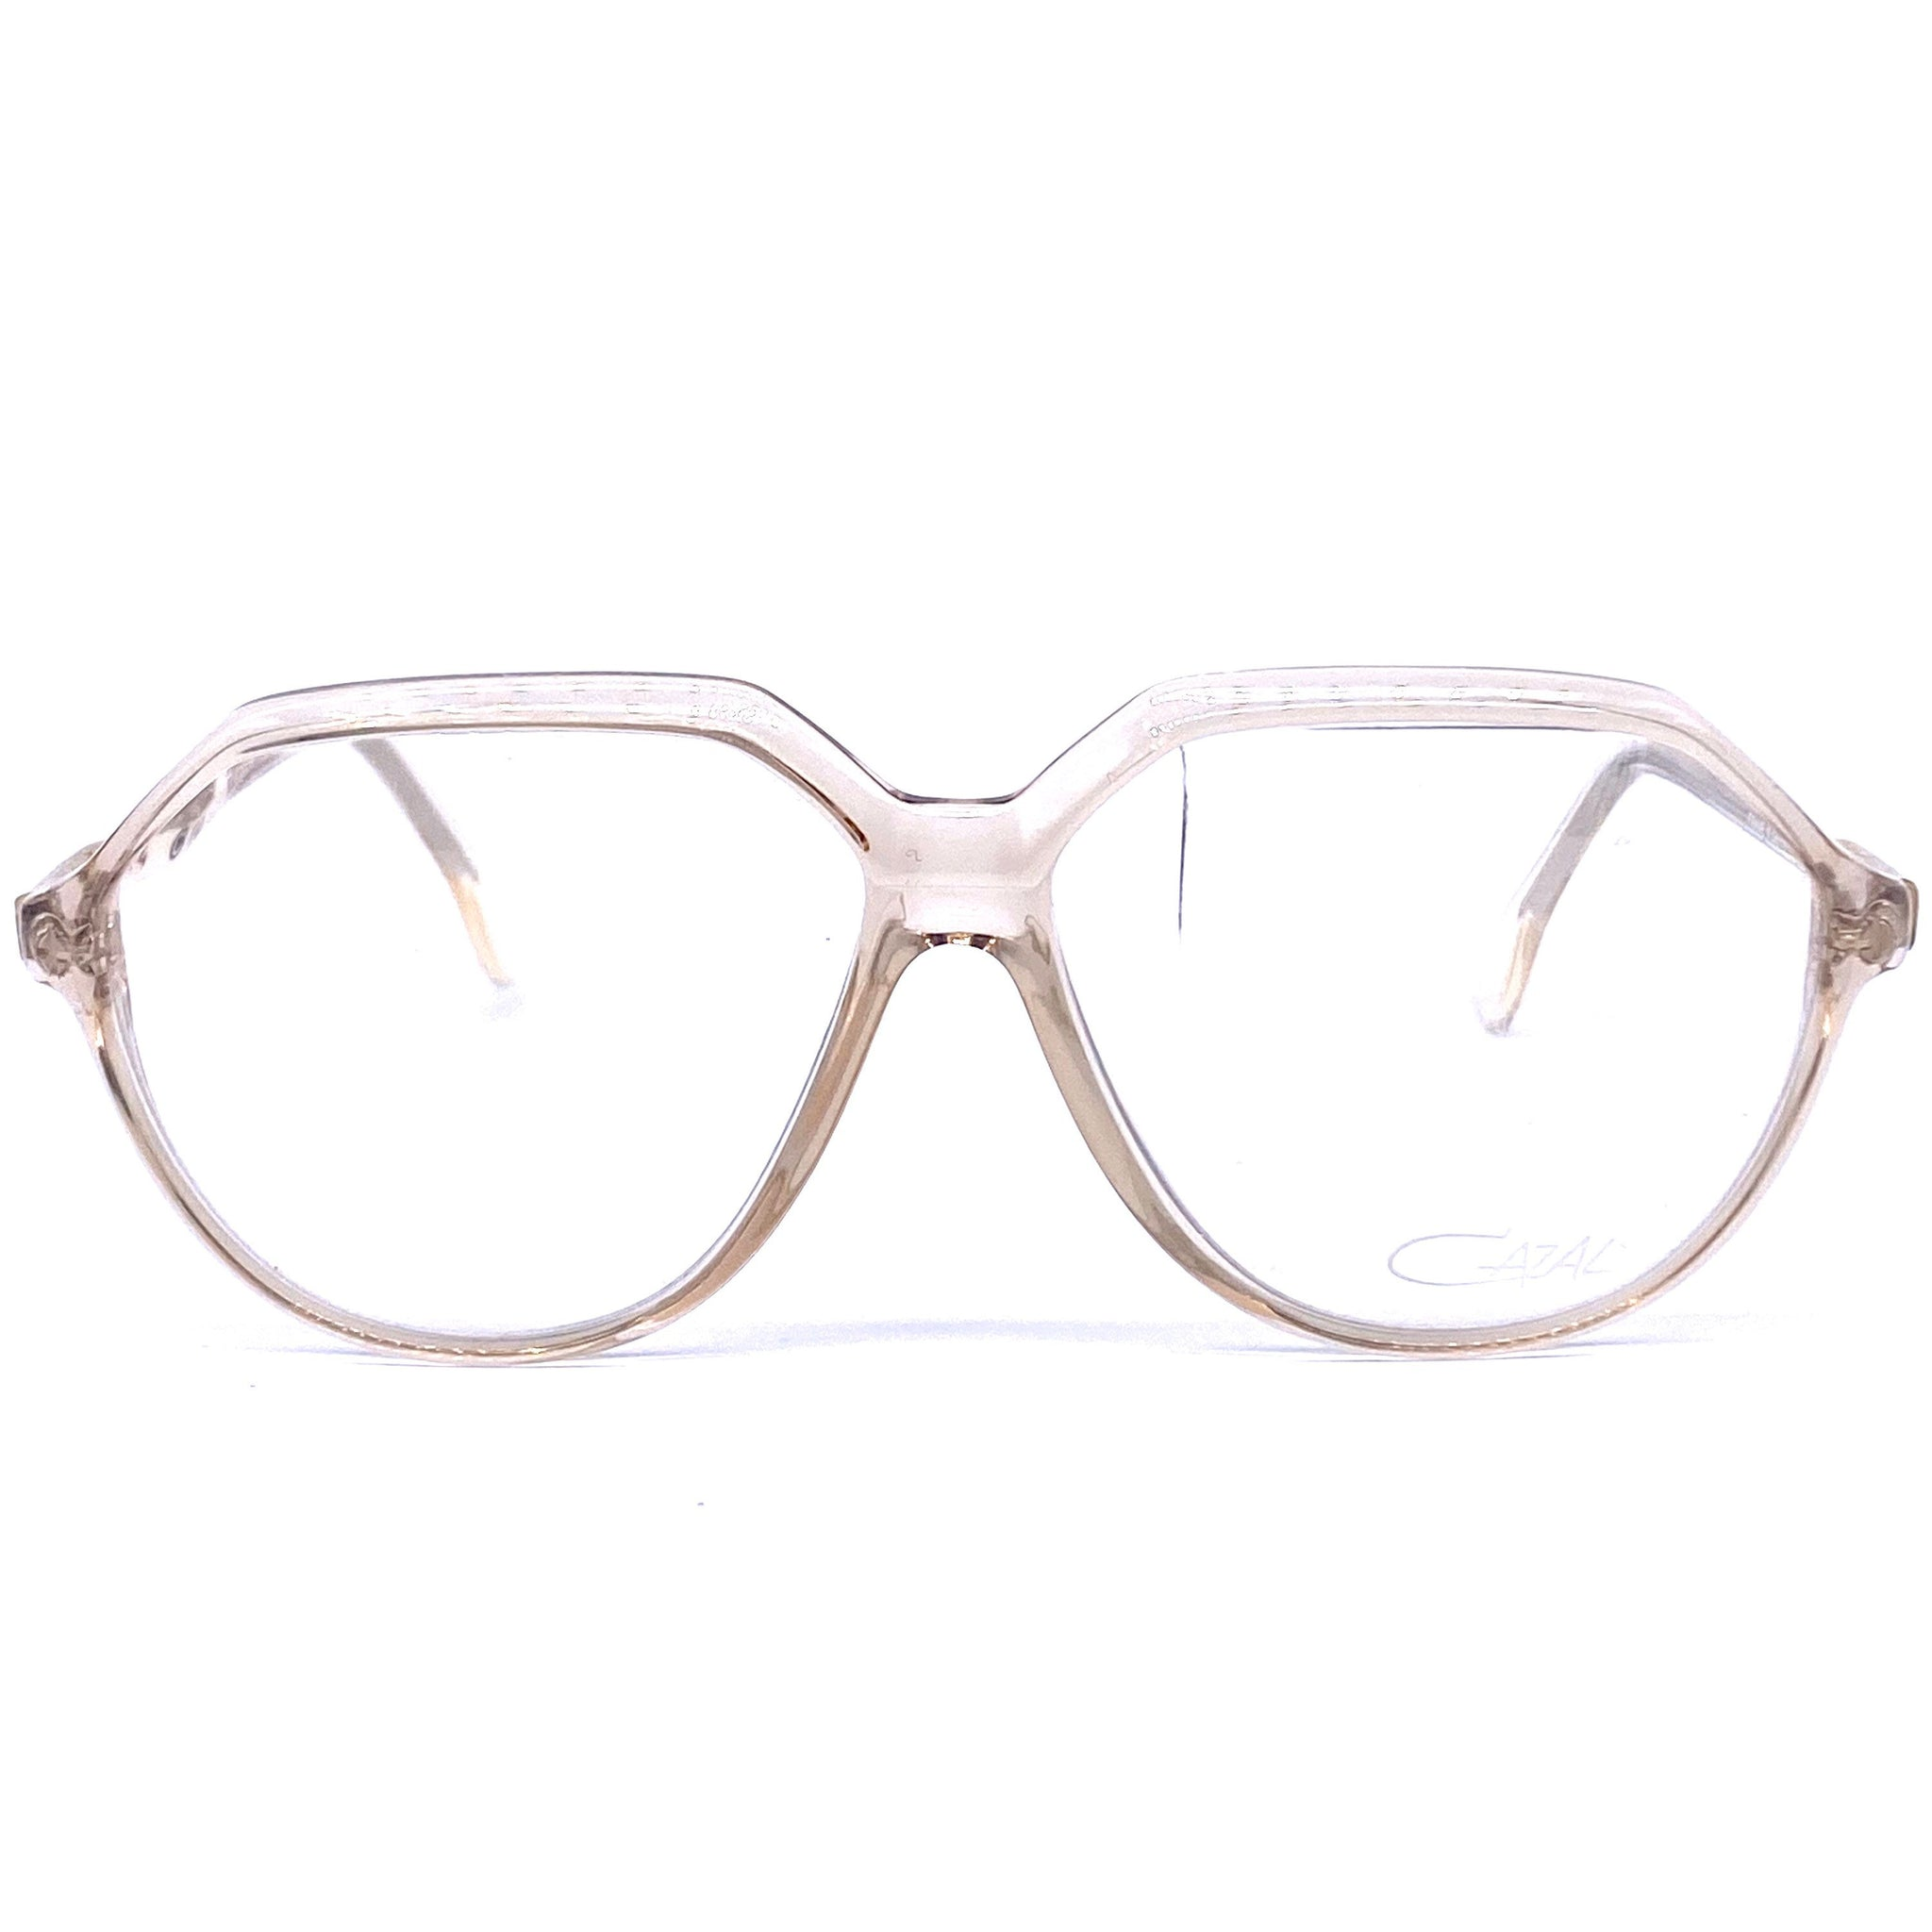 Cazal 624 oversized eyeglasses/sunglasses frames made in West Germany, 1980s NOS - viceversashop